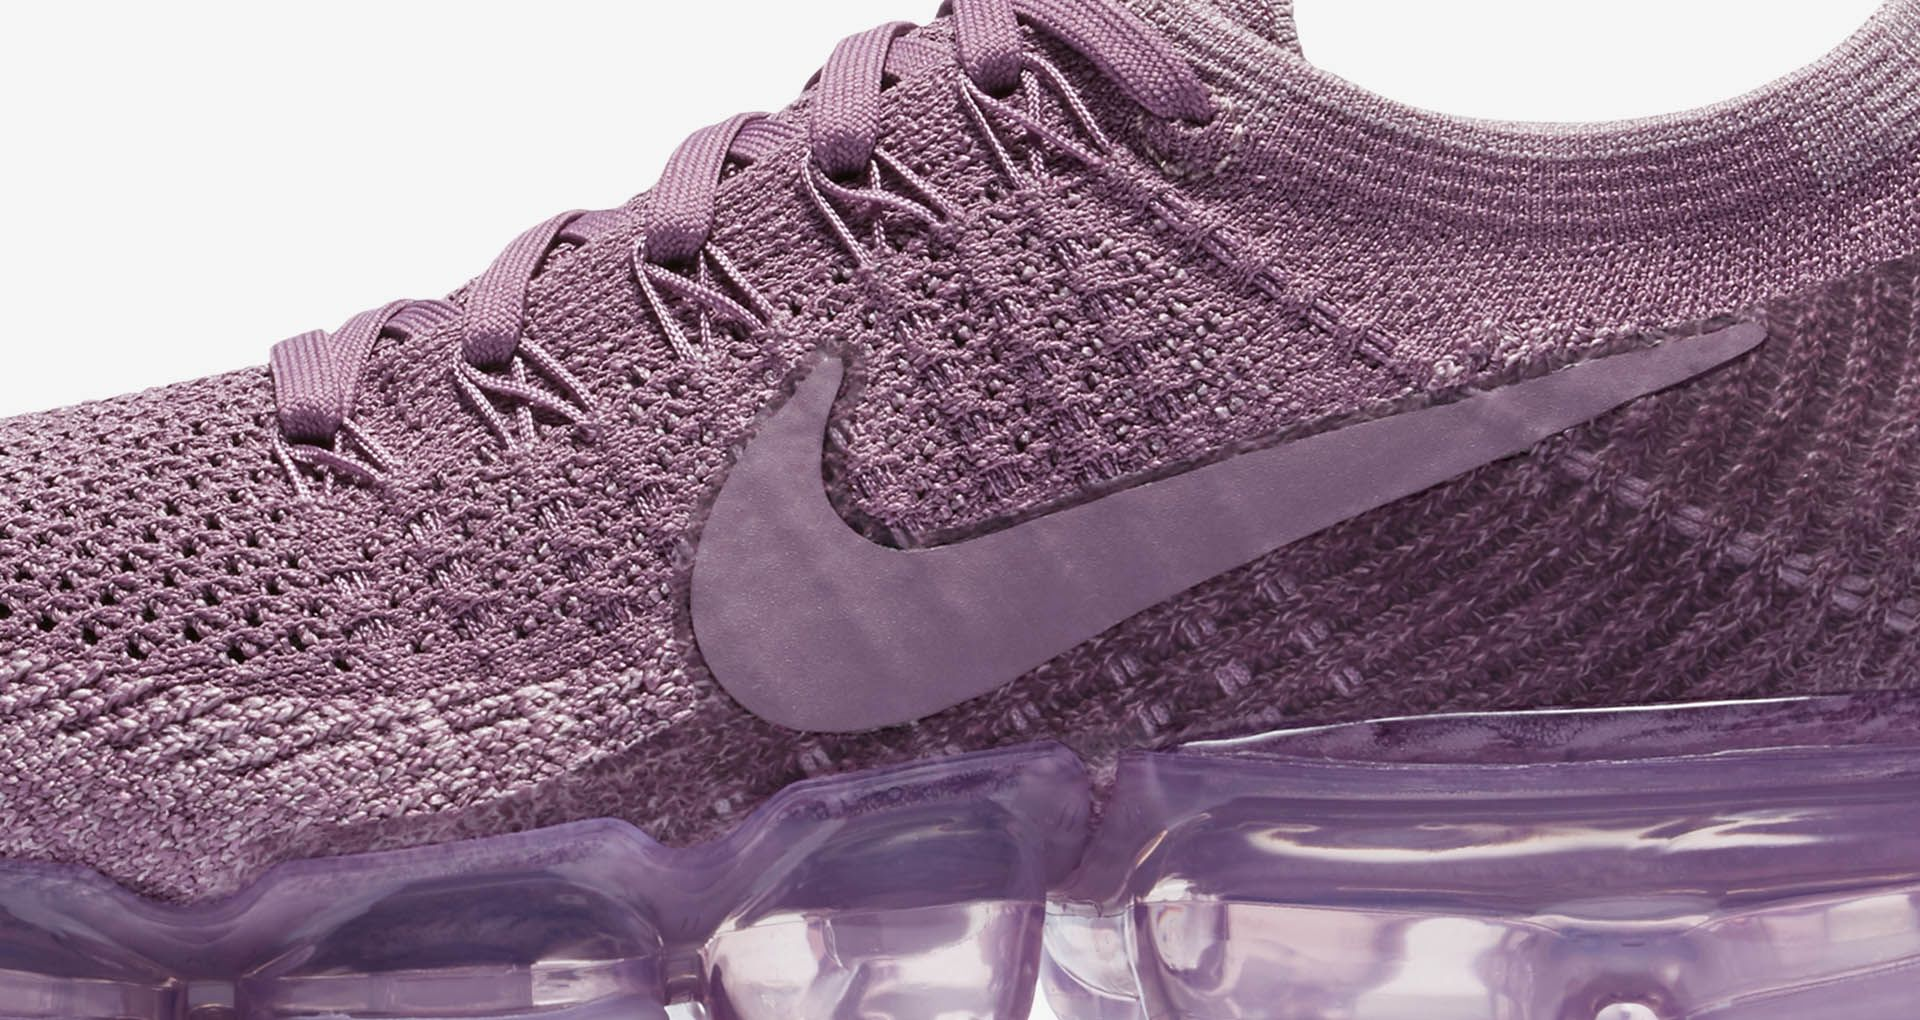 7d27130d1a4 Women s Nike Air VaporMax Flyknit Day to Night  Violet Dust . Nike⁠+ ...